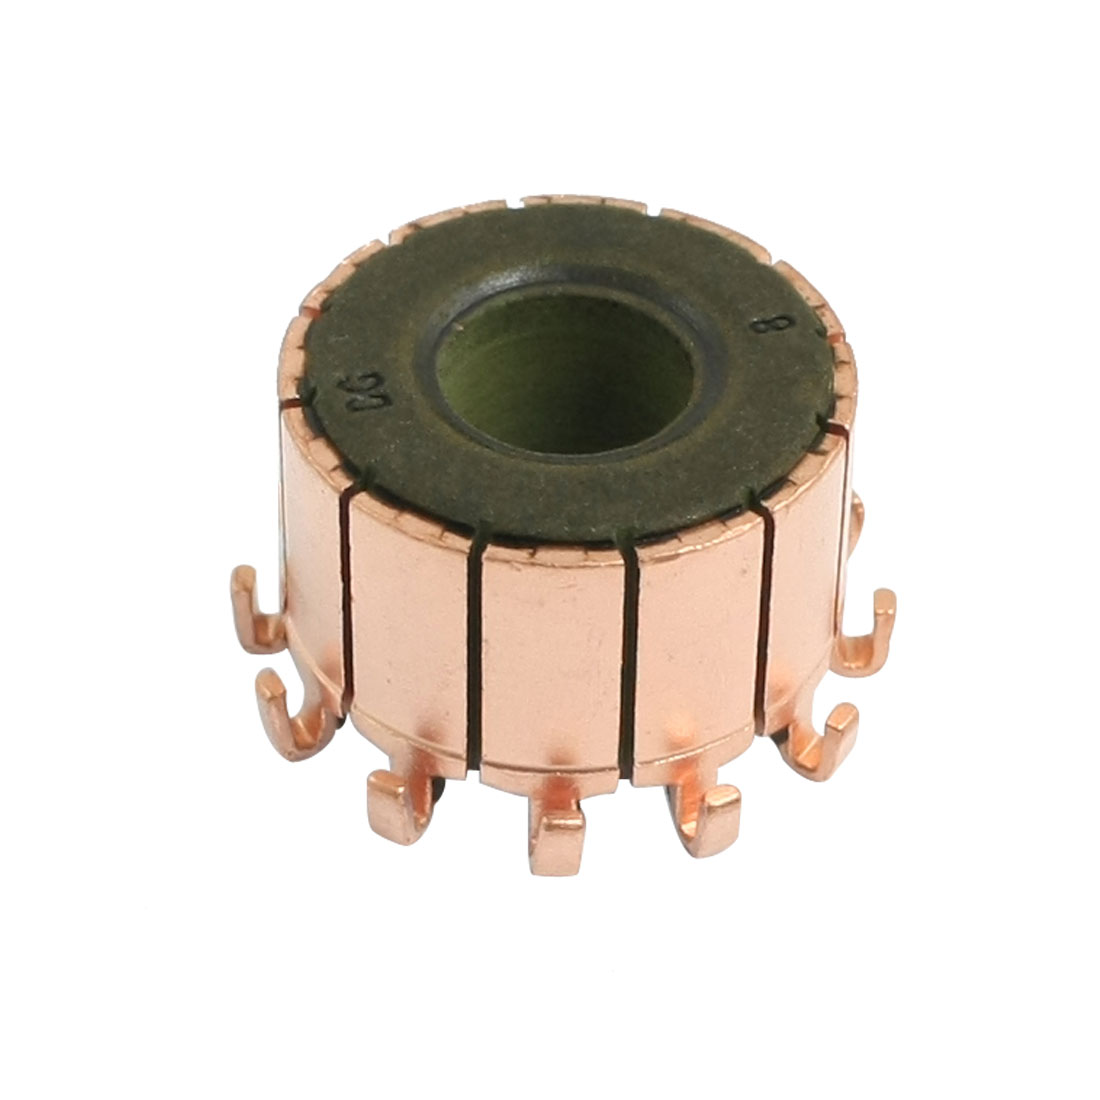 8mm x 18.9mm x 12.5mm 12 Tooth Copper Case Auto Alternator Power Tool Commutator